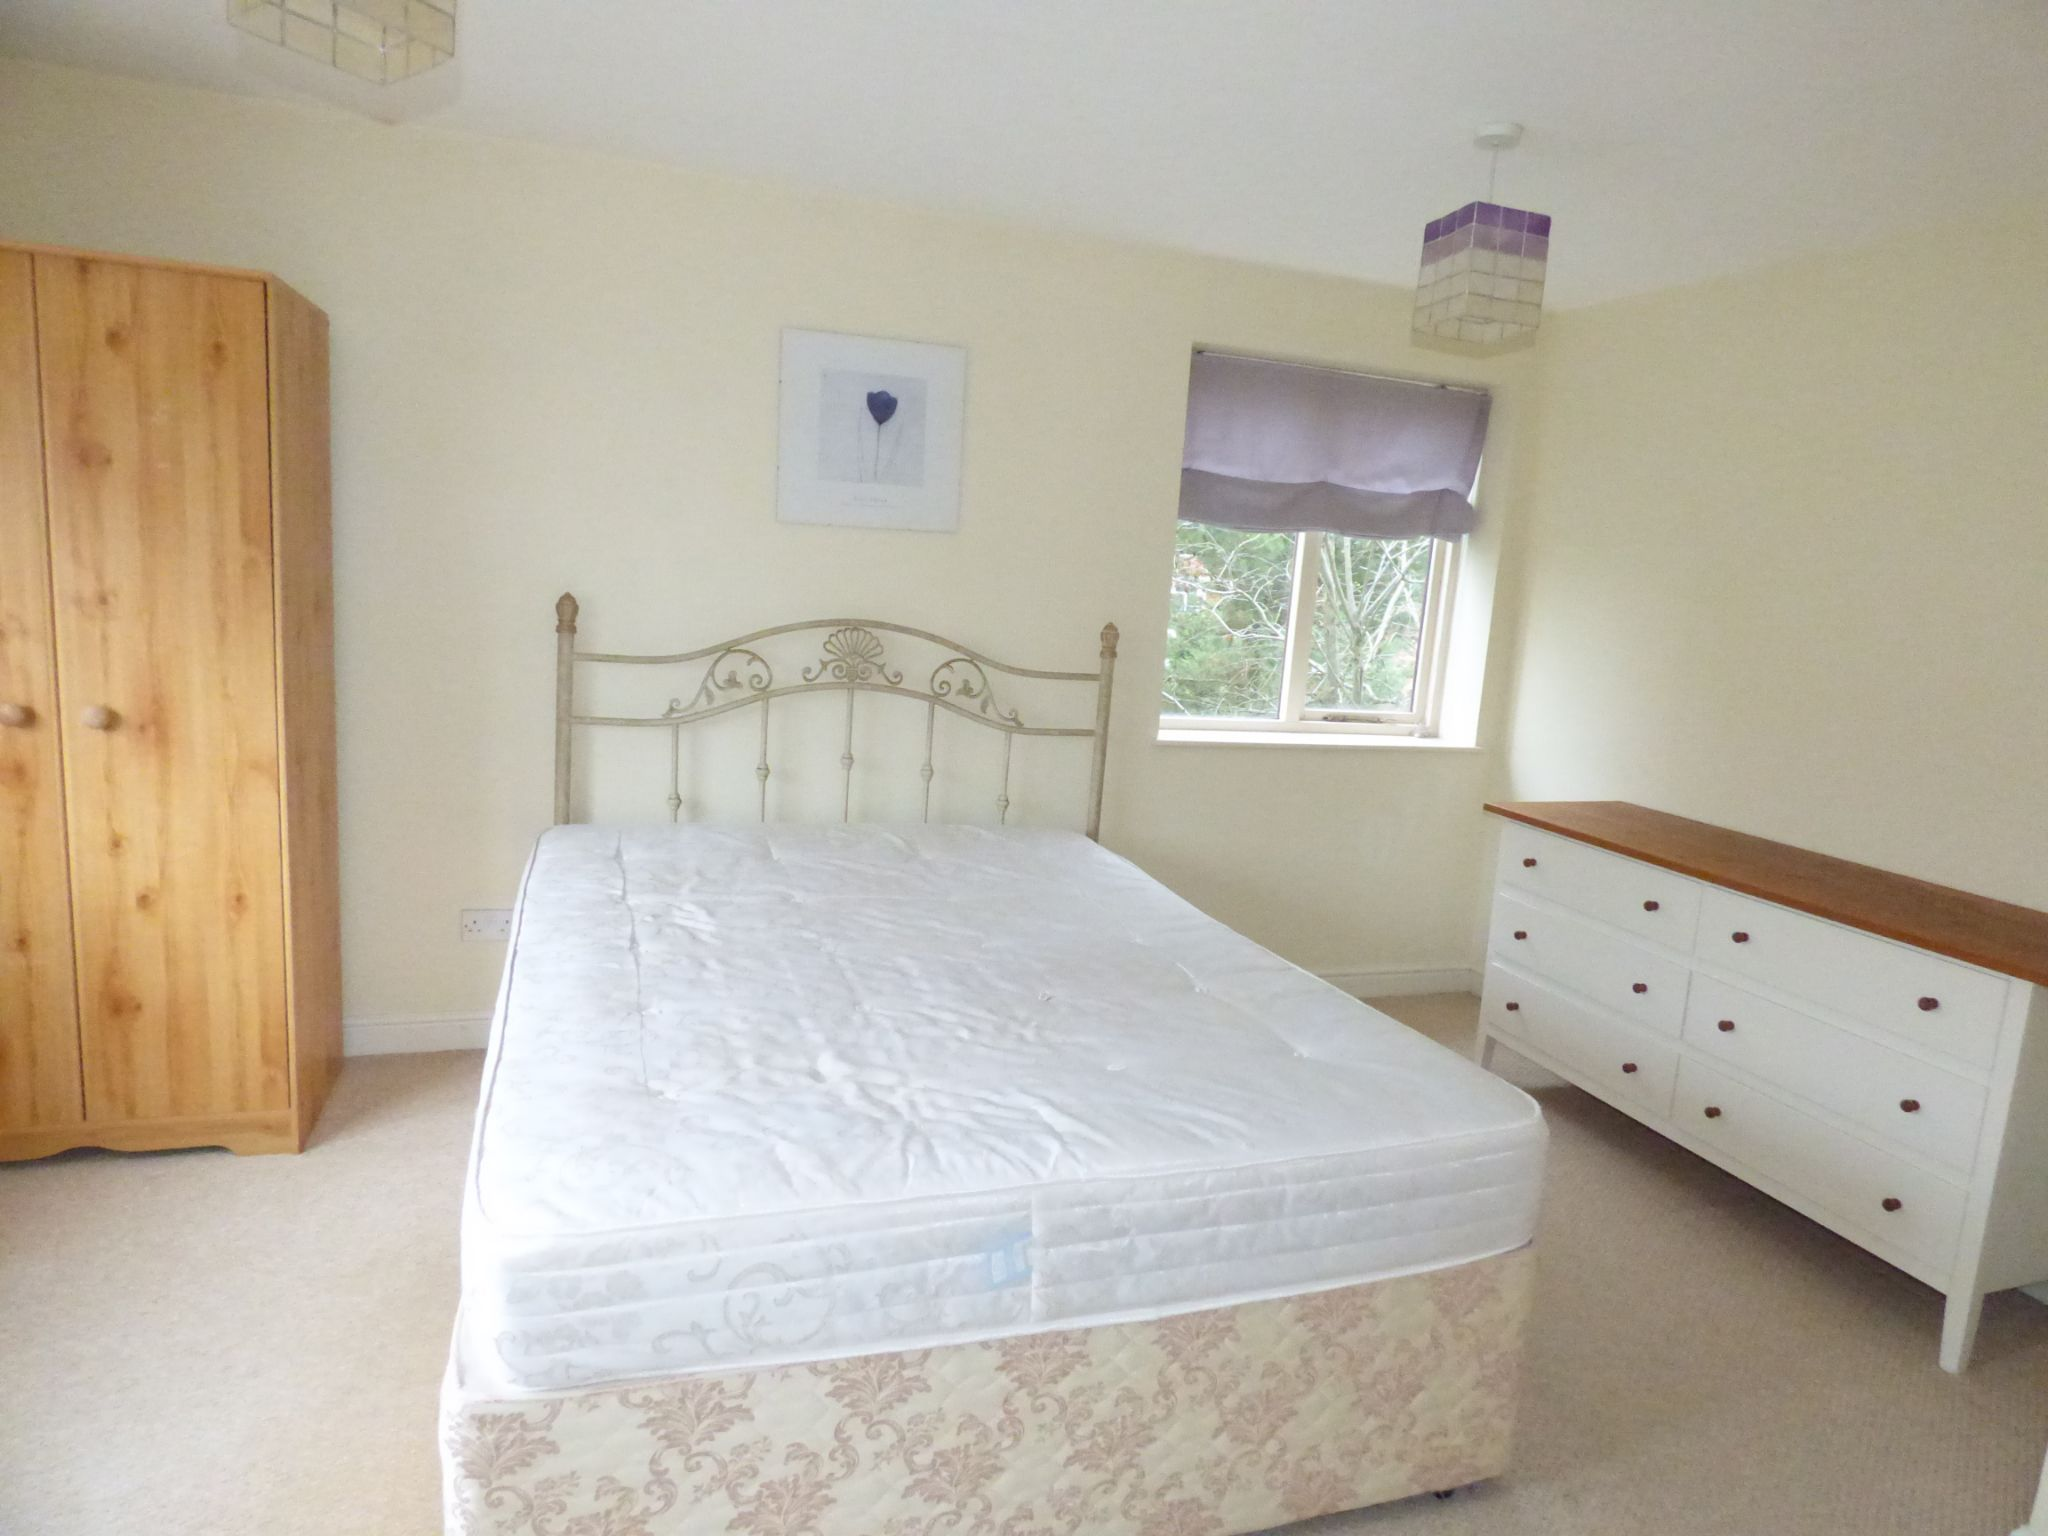 6 Bedroom Detached House For Sale - Photograph 7